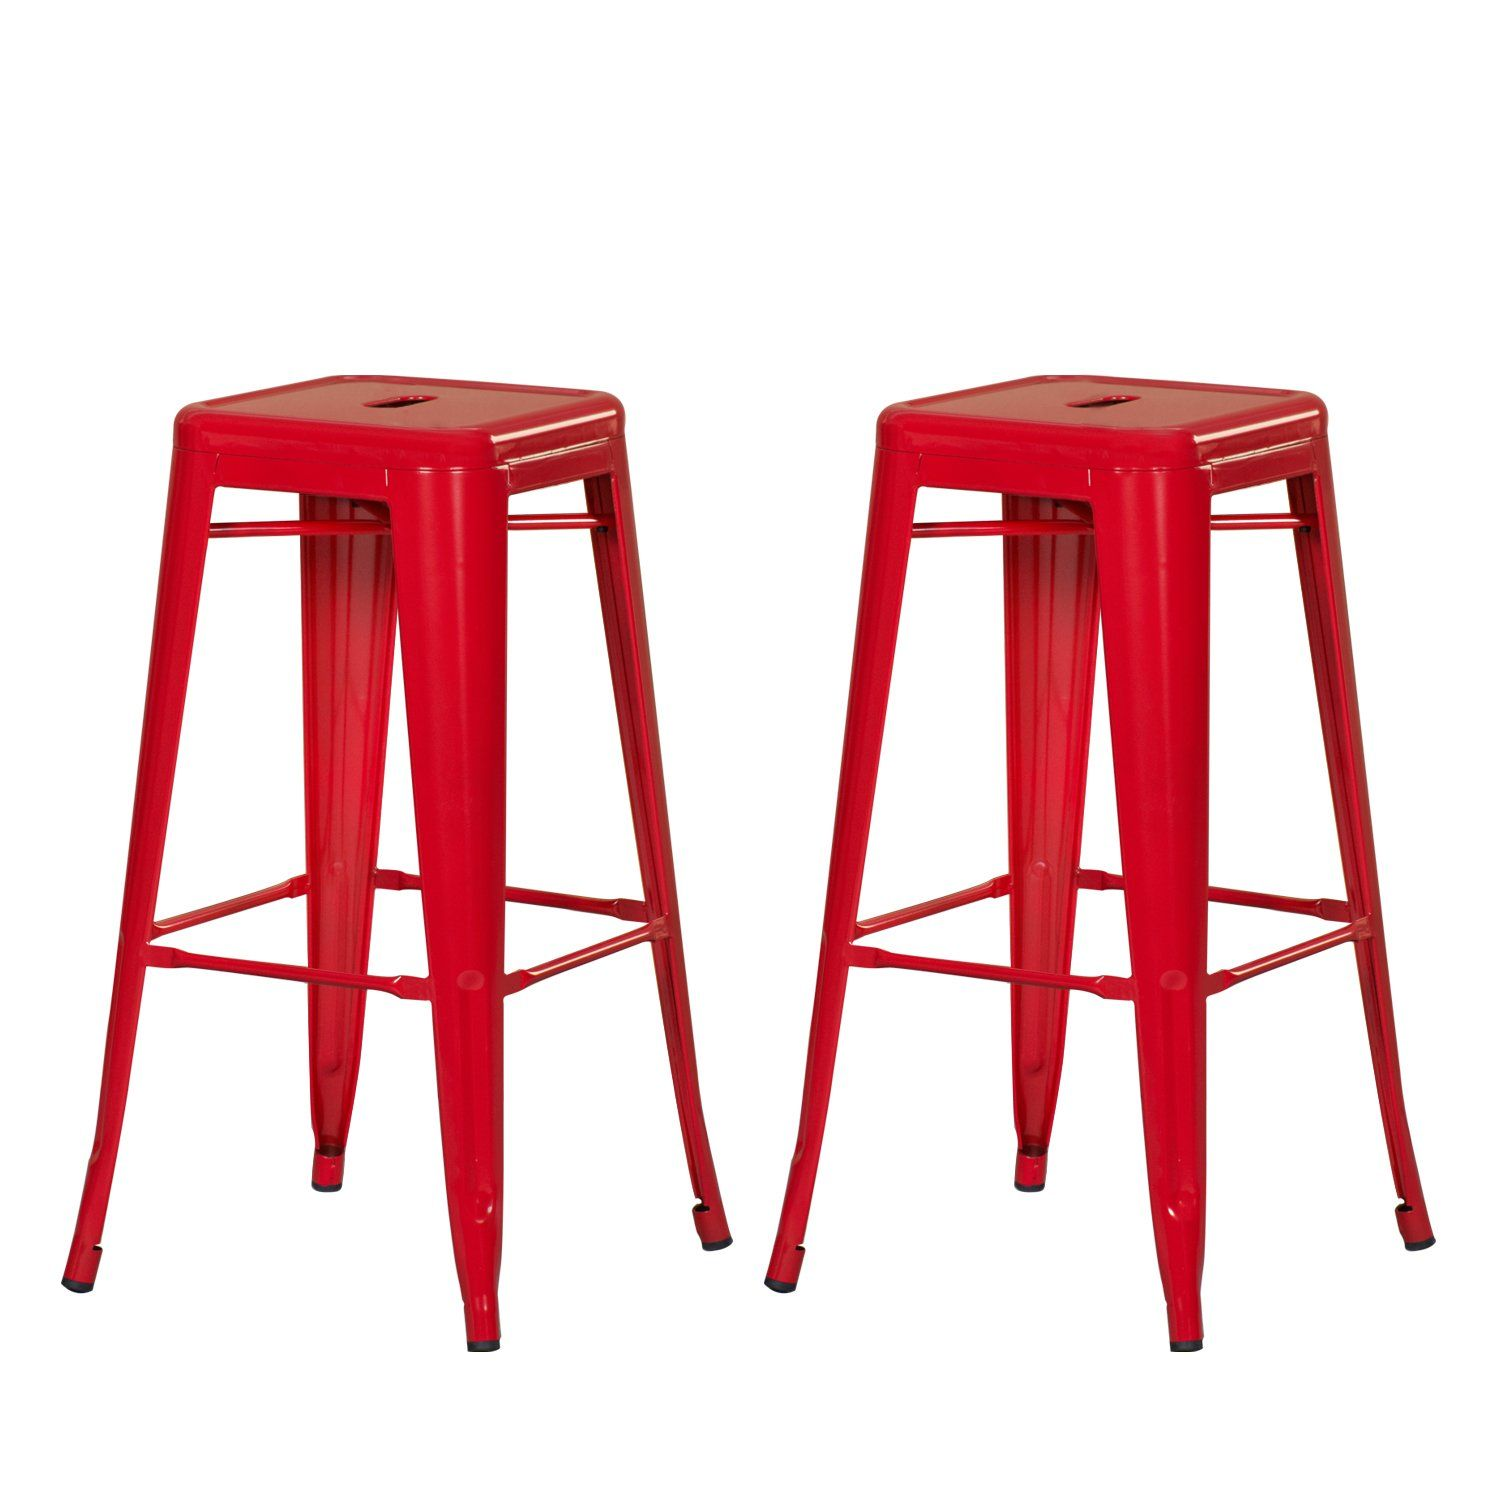 Lyon Fixed Height Industrial Stool Without Back 30 Seat Height